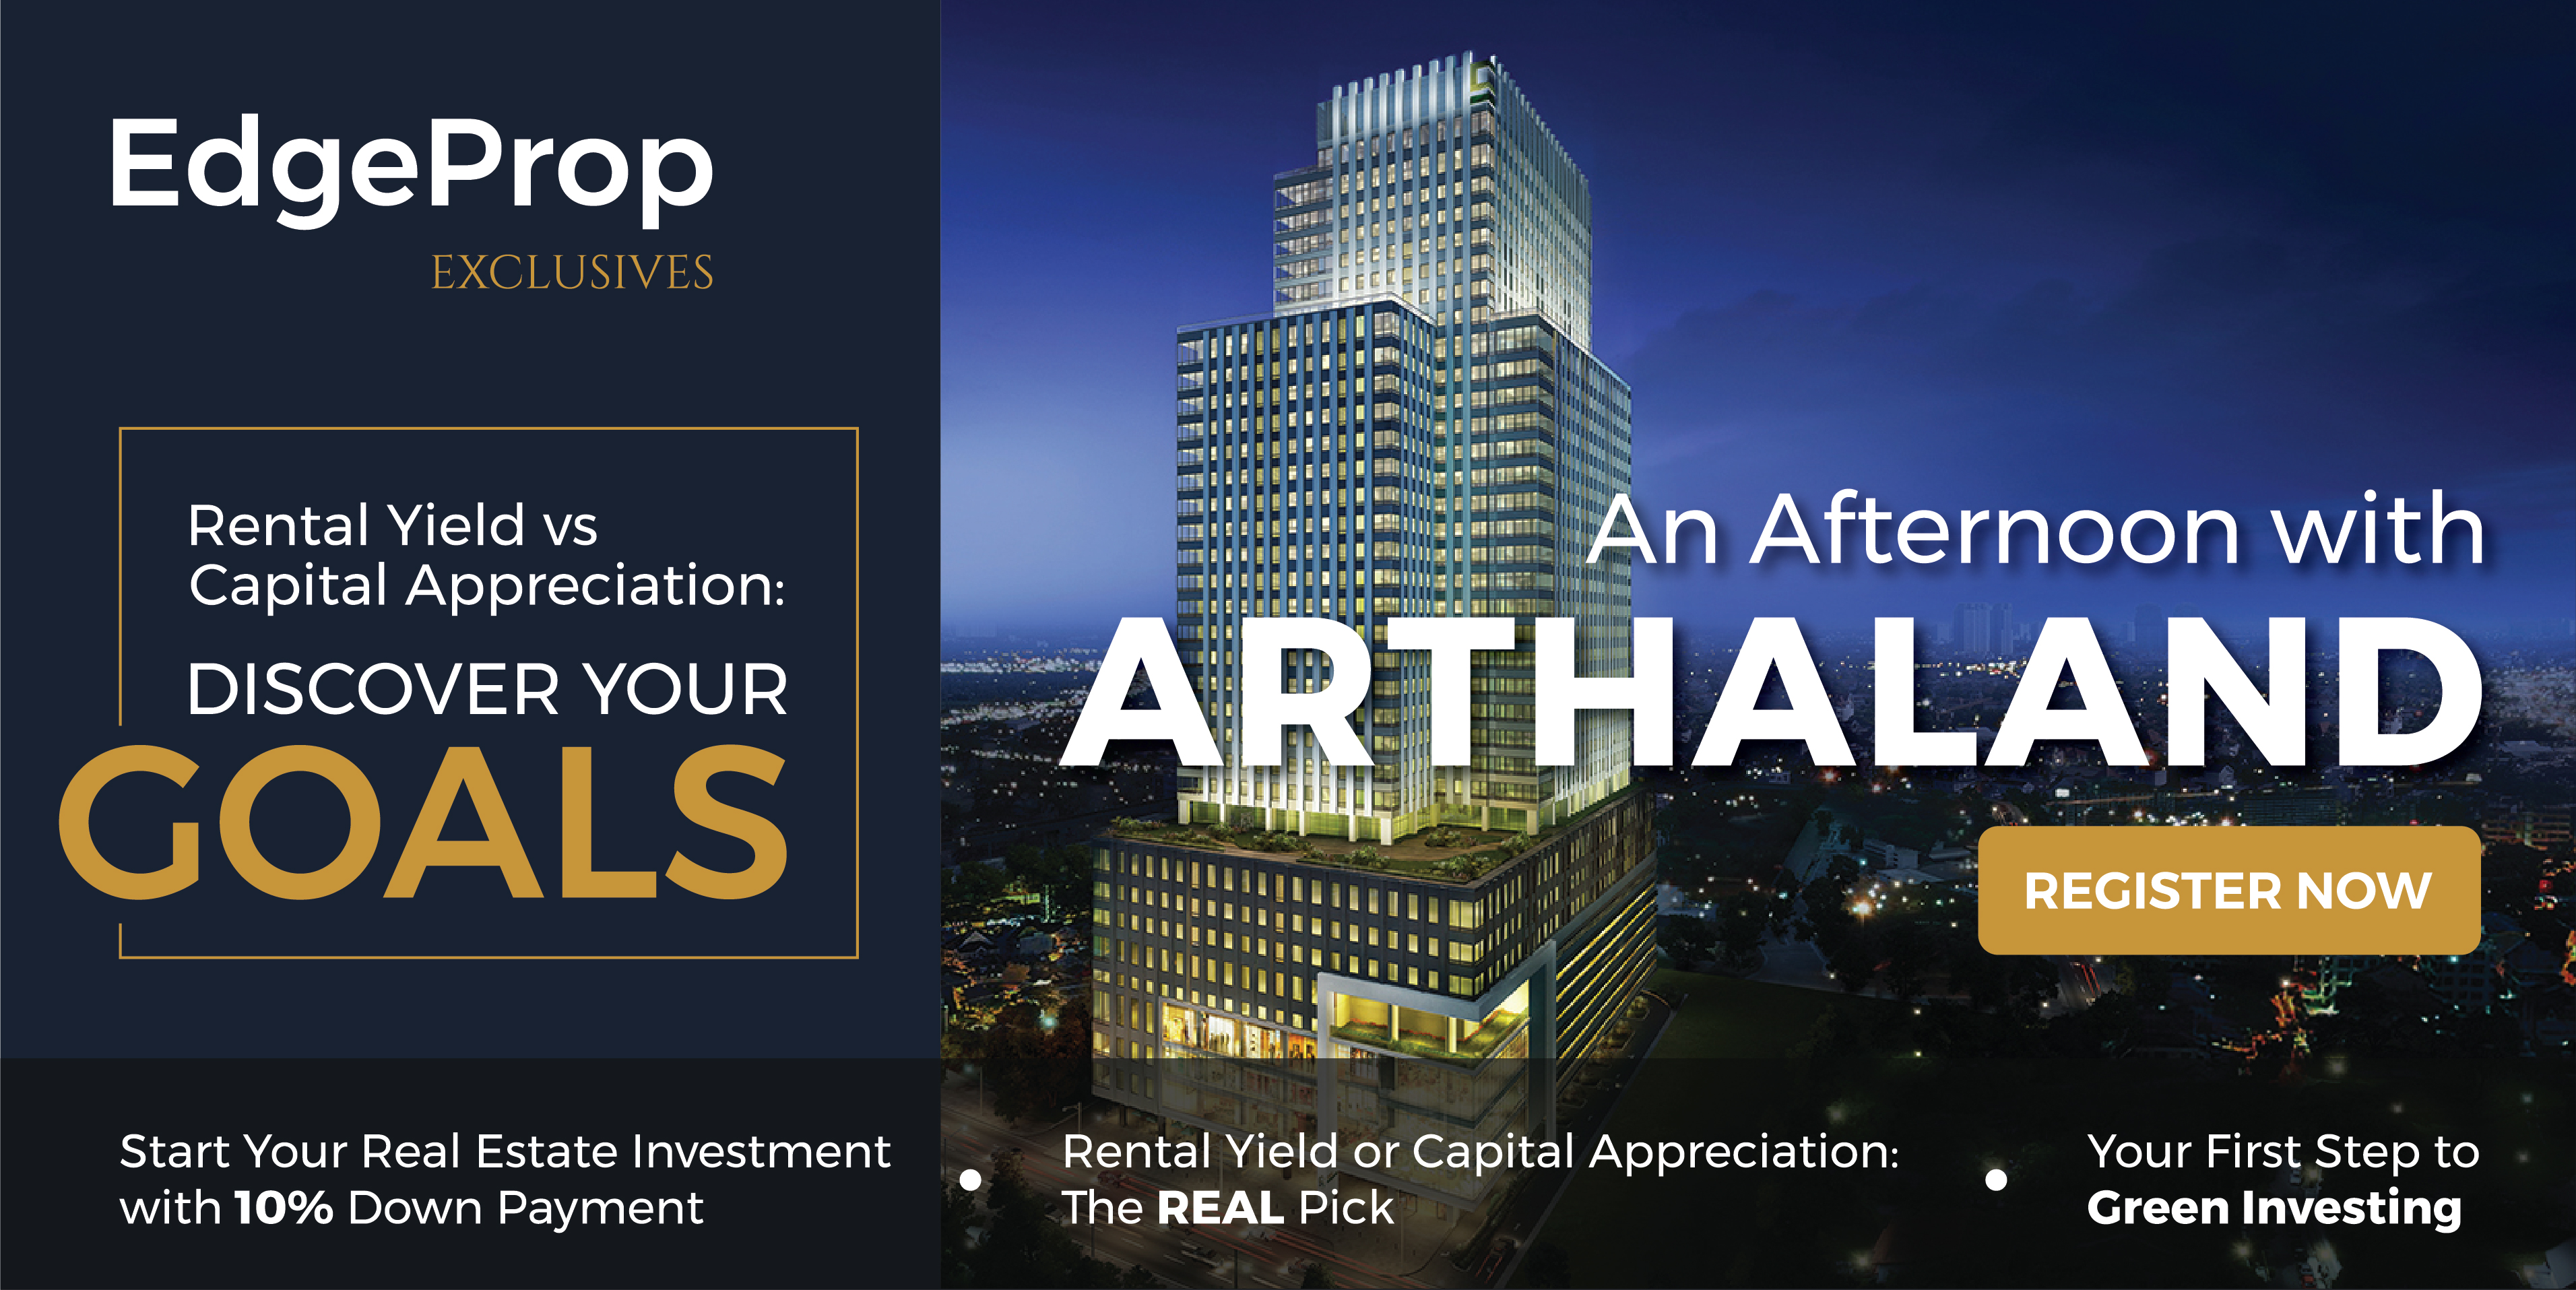 EVENT - EdgeProp Exclusives : An Afternoon with Arthaland